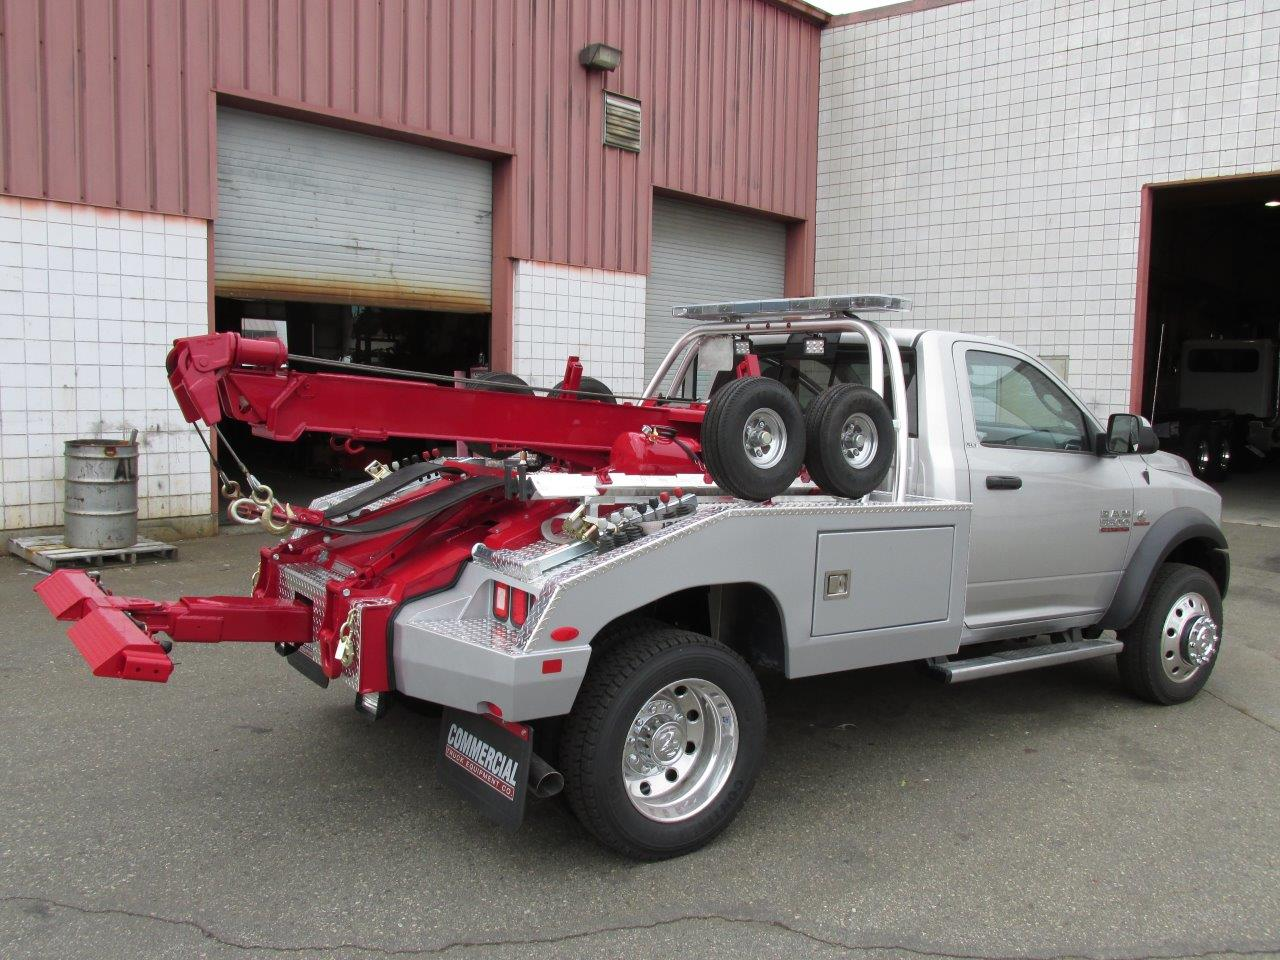 Tow Trucks For Sale Flat Bed Car Carriers Recouvery Vehicles Wreckers